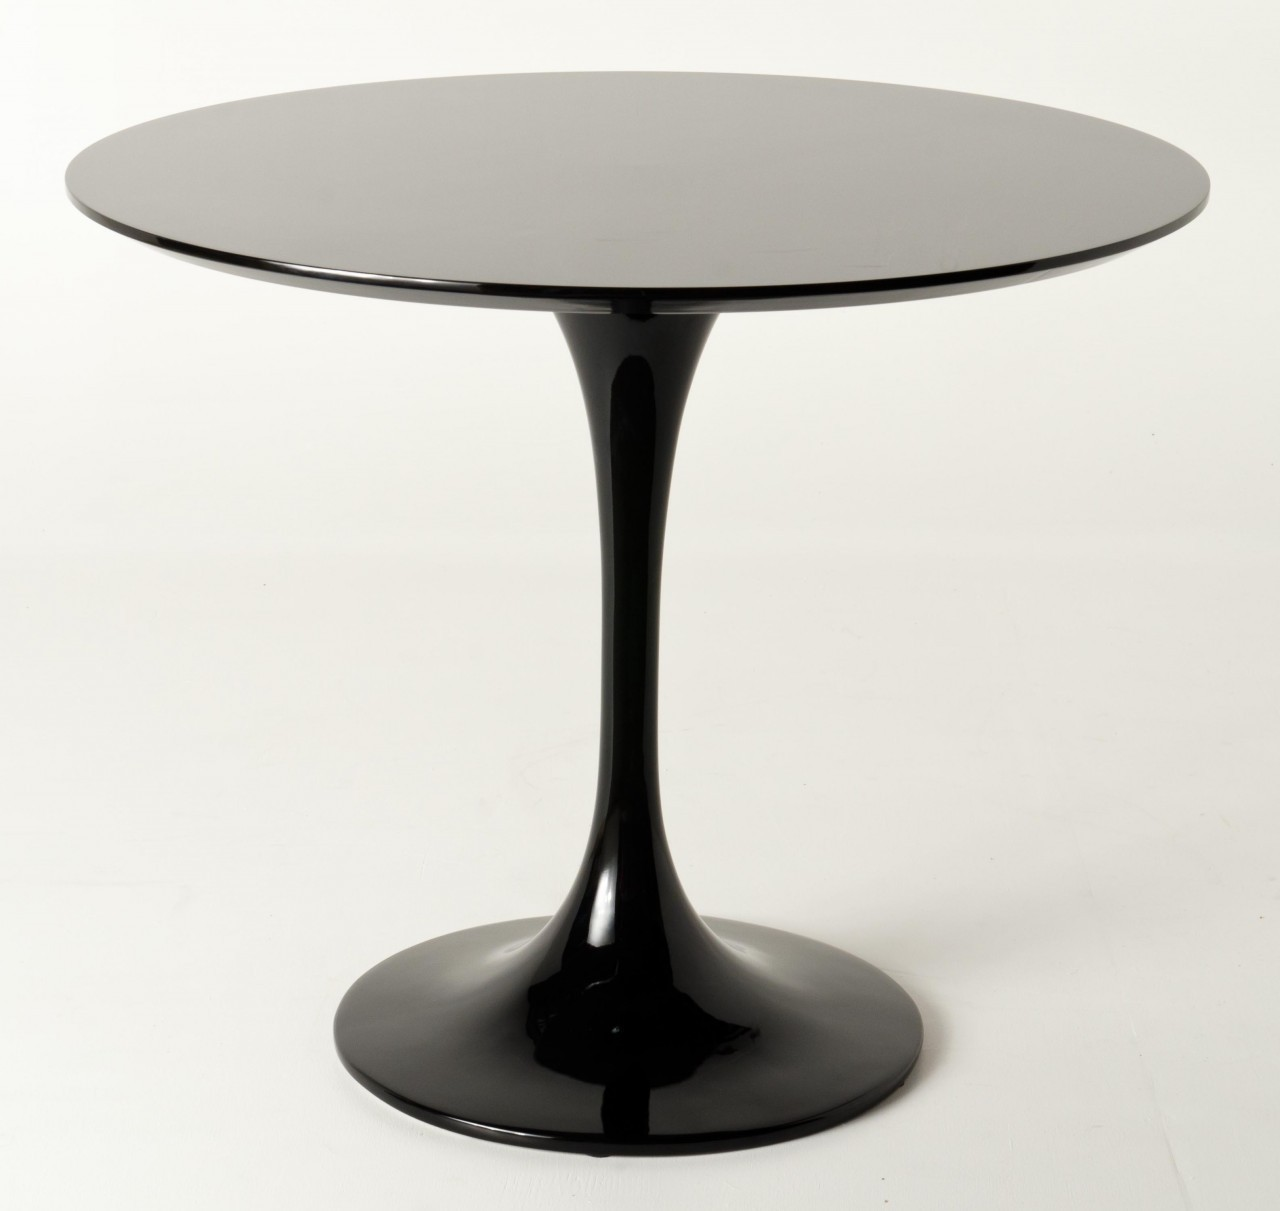 eero saarinen dining table tulip table 80cm design dining table. Black Bedroom Furniture Sets. Home Design Ideas